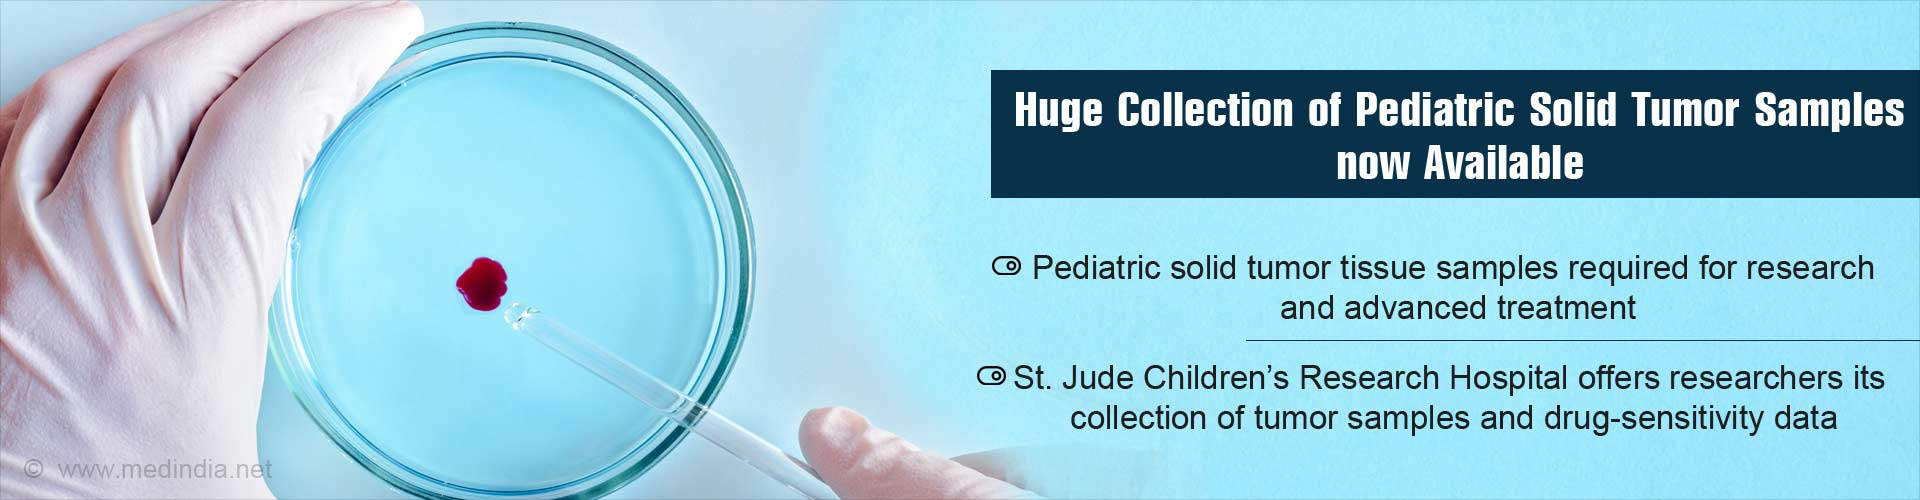 St. Jude Children�s Research Hospital Creates a Powerful Resource of Pediatric Tumor Samples